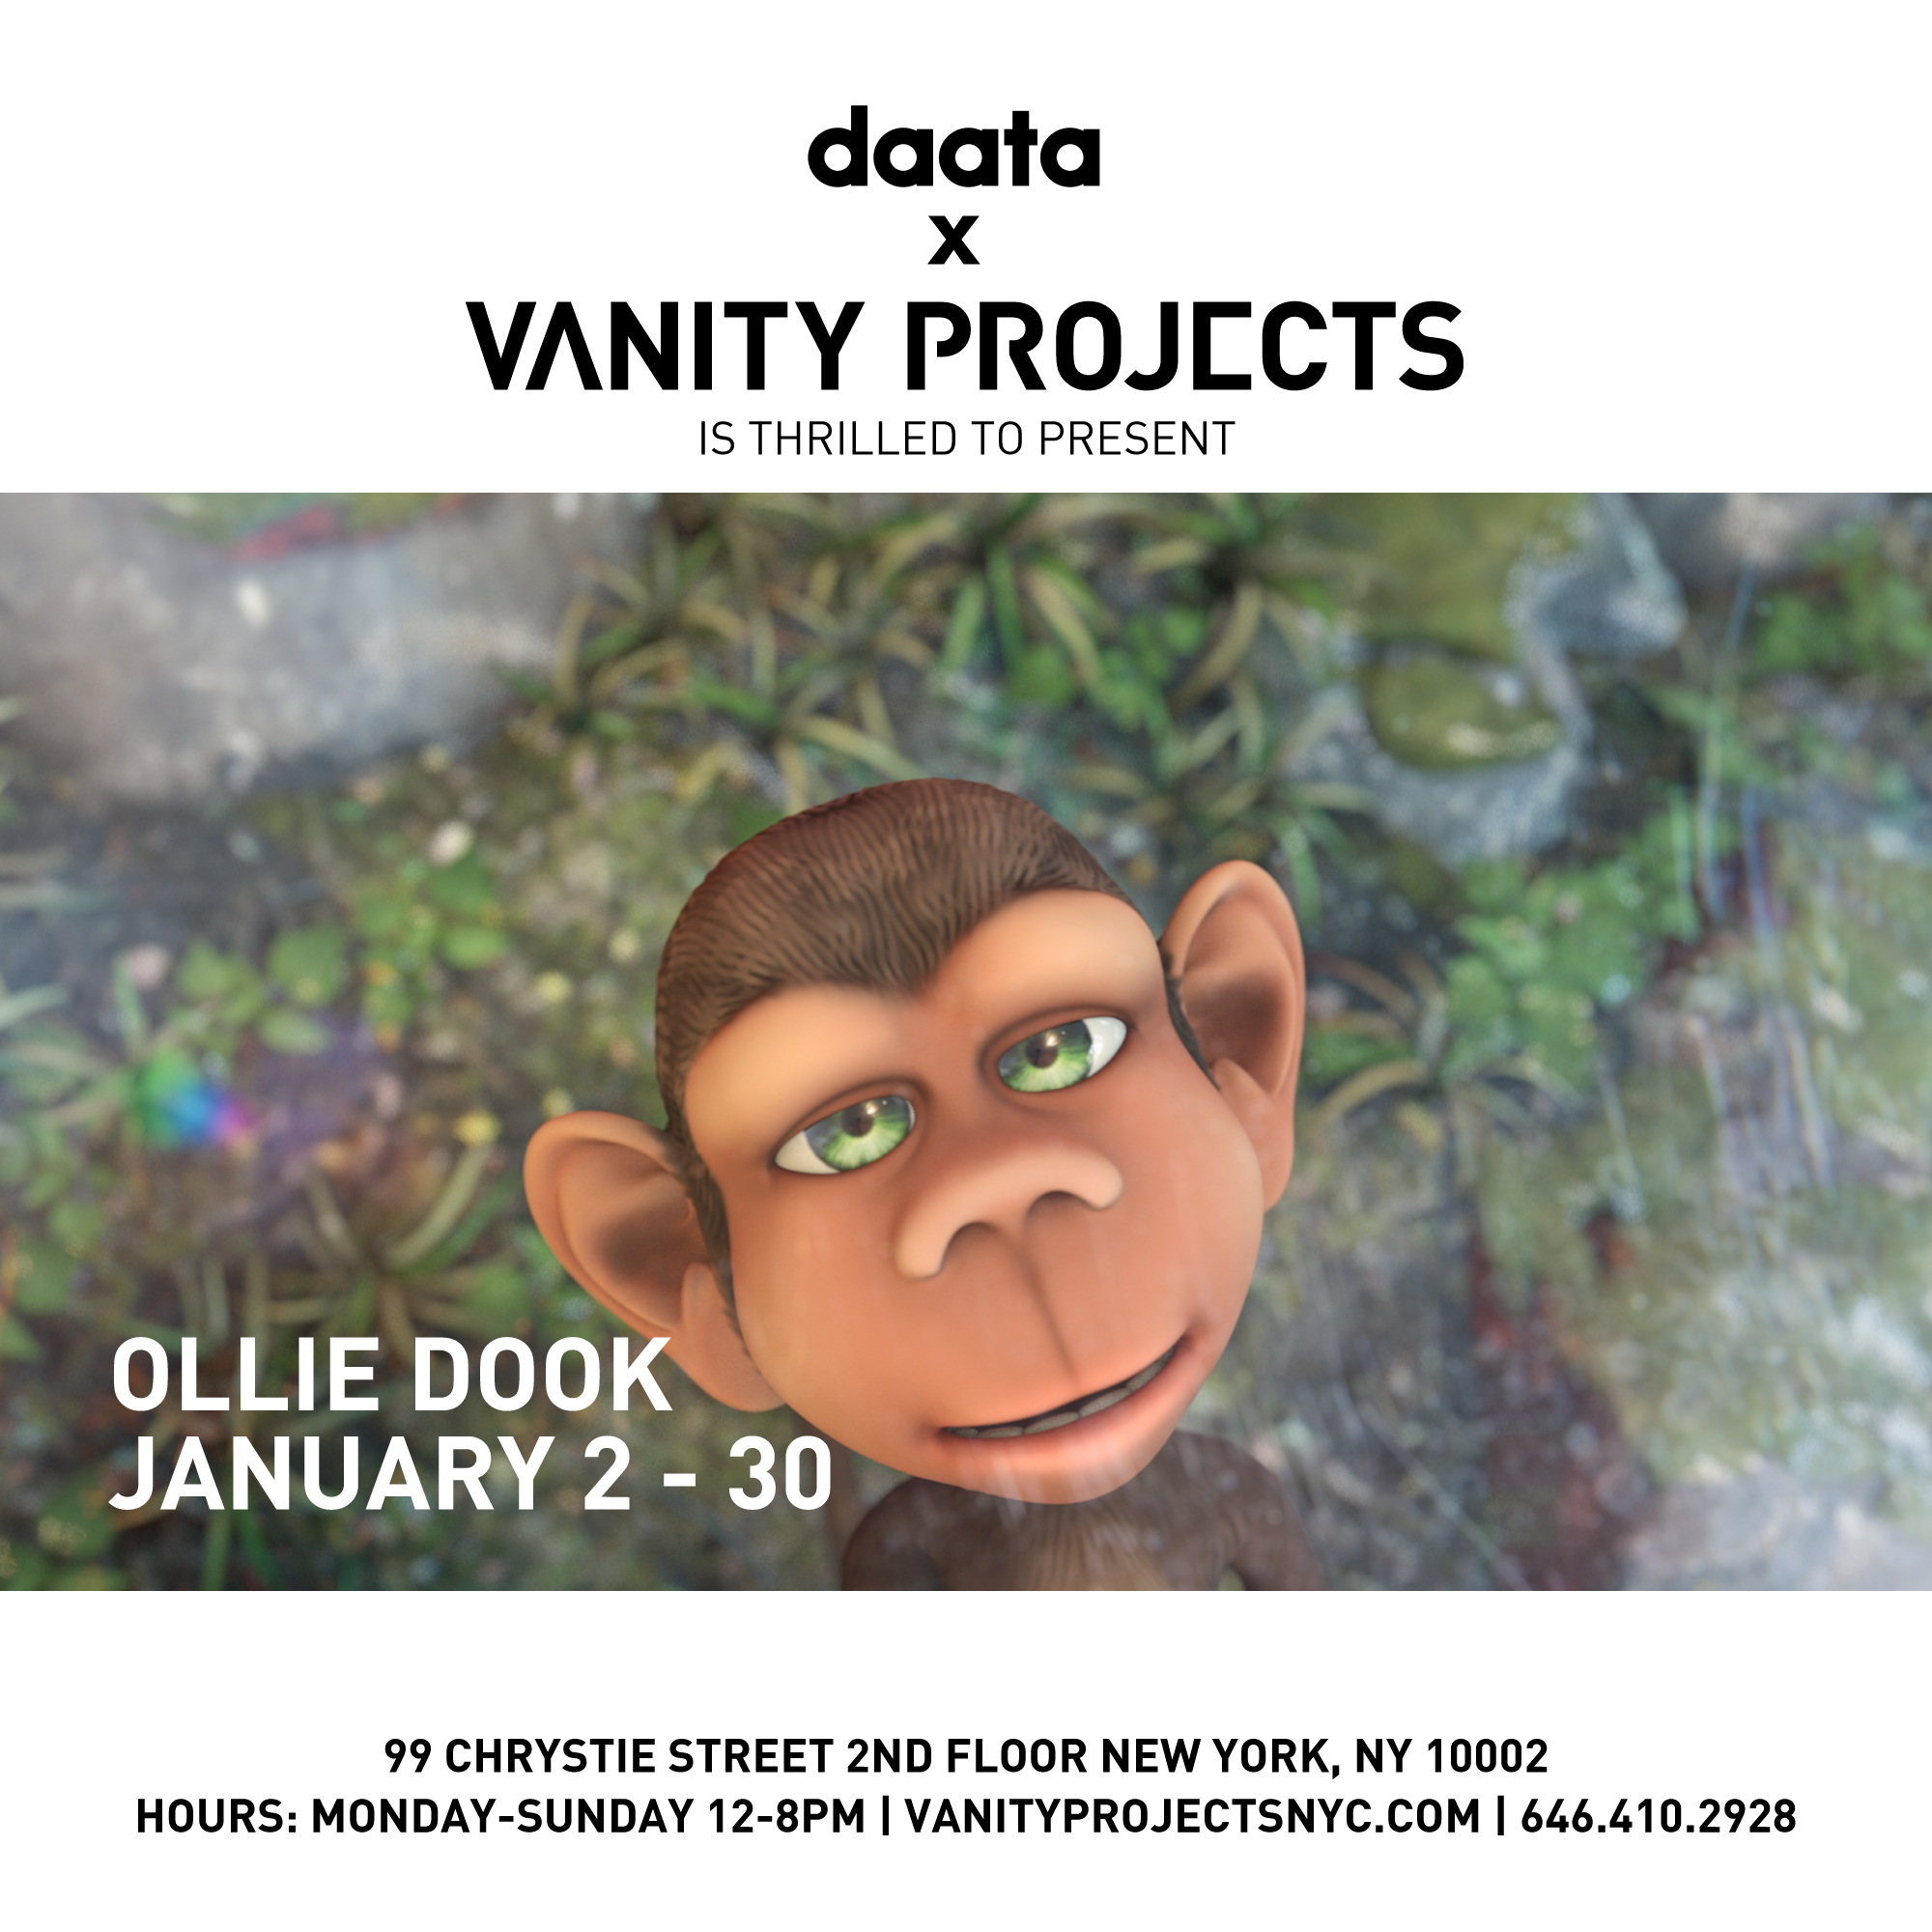 vp_announcements_daata_ollie_dook_nyc.jpg